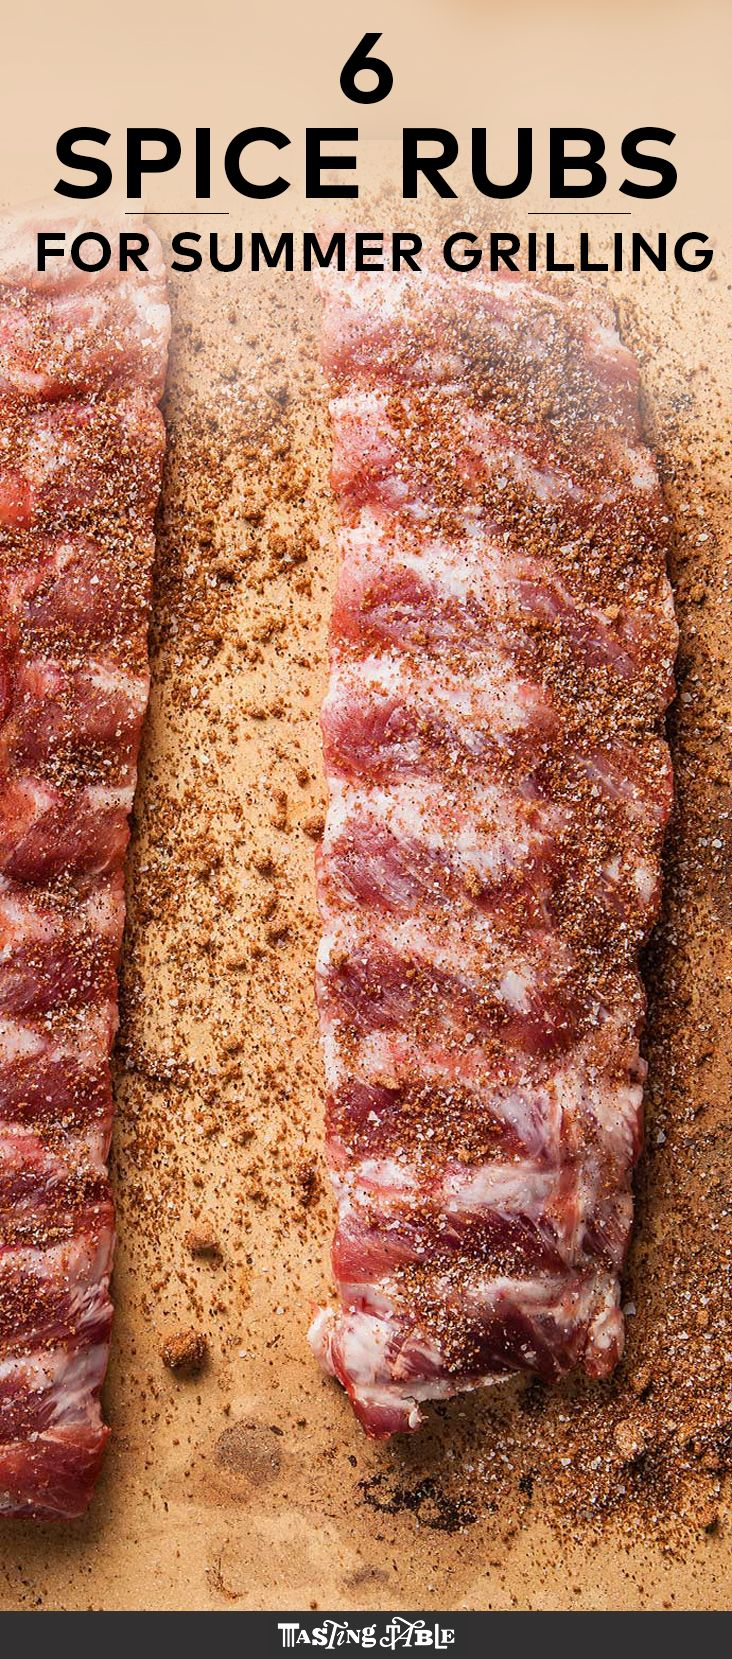 6 spice rubs to achieve summer grilling perfection.